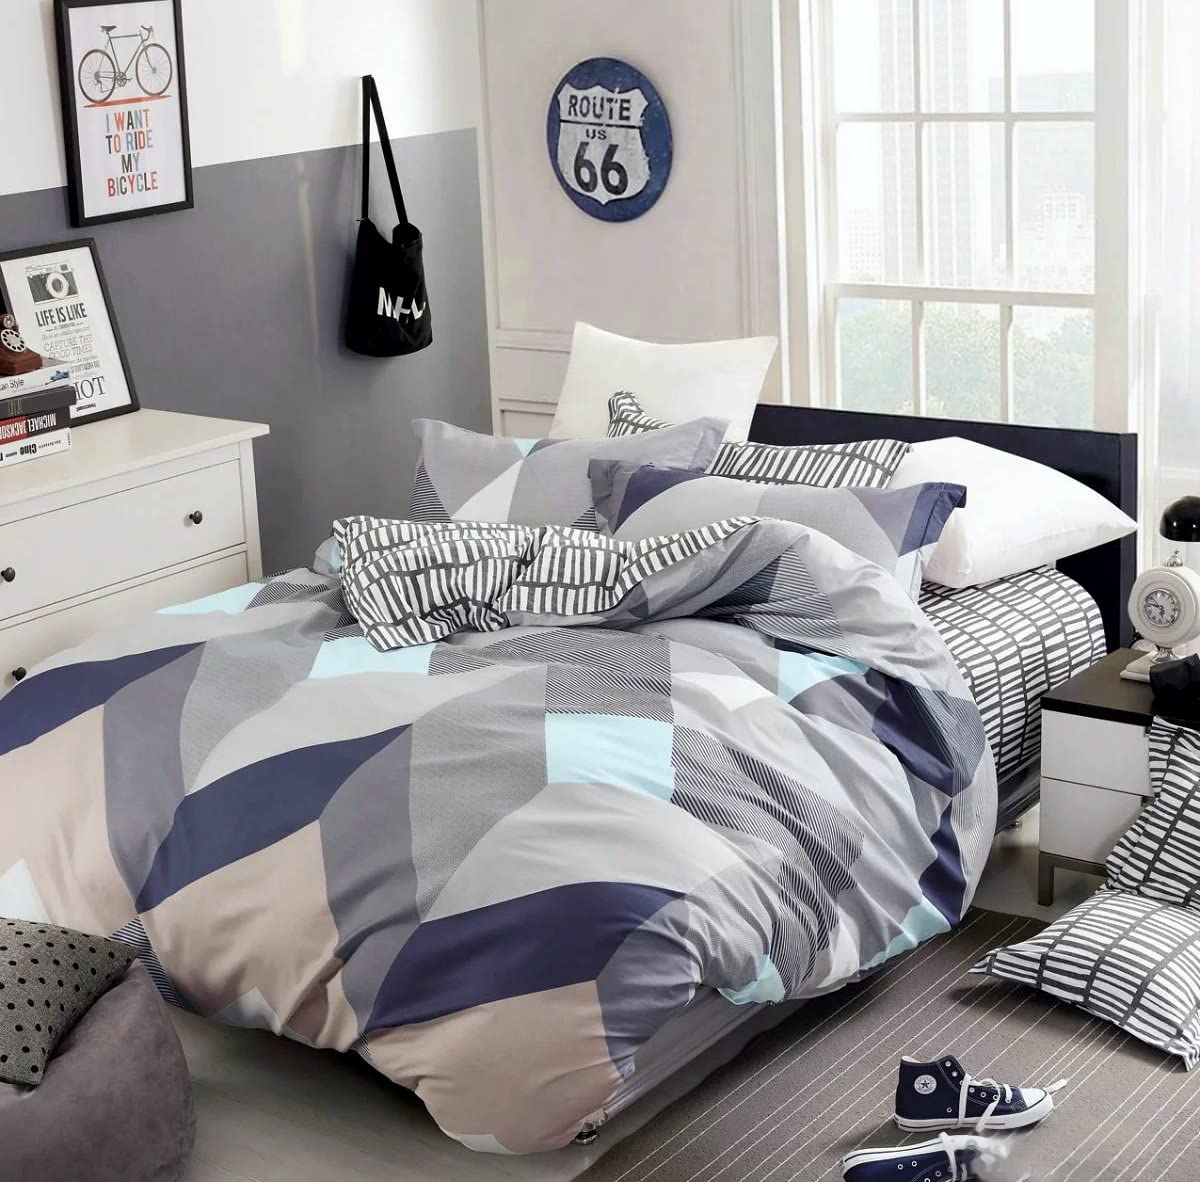 Eikei Home Minimal Style Geometric Shapes Duvet Quilt Cover Modern Scandinavian Design Bedding Set 100 Percent Cotton Soft Casual Reversible Block Print Triangle Pattern Queen Mauve Sky Home Kitchen